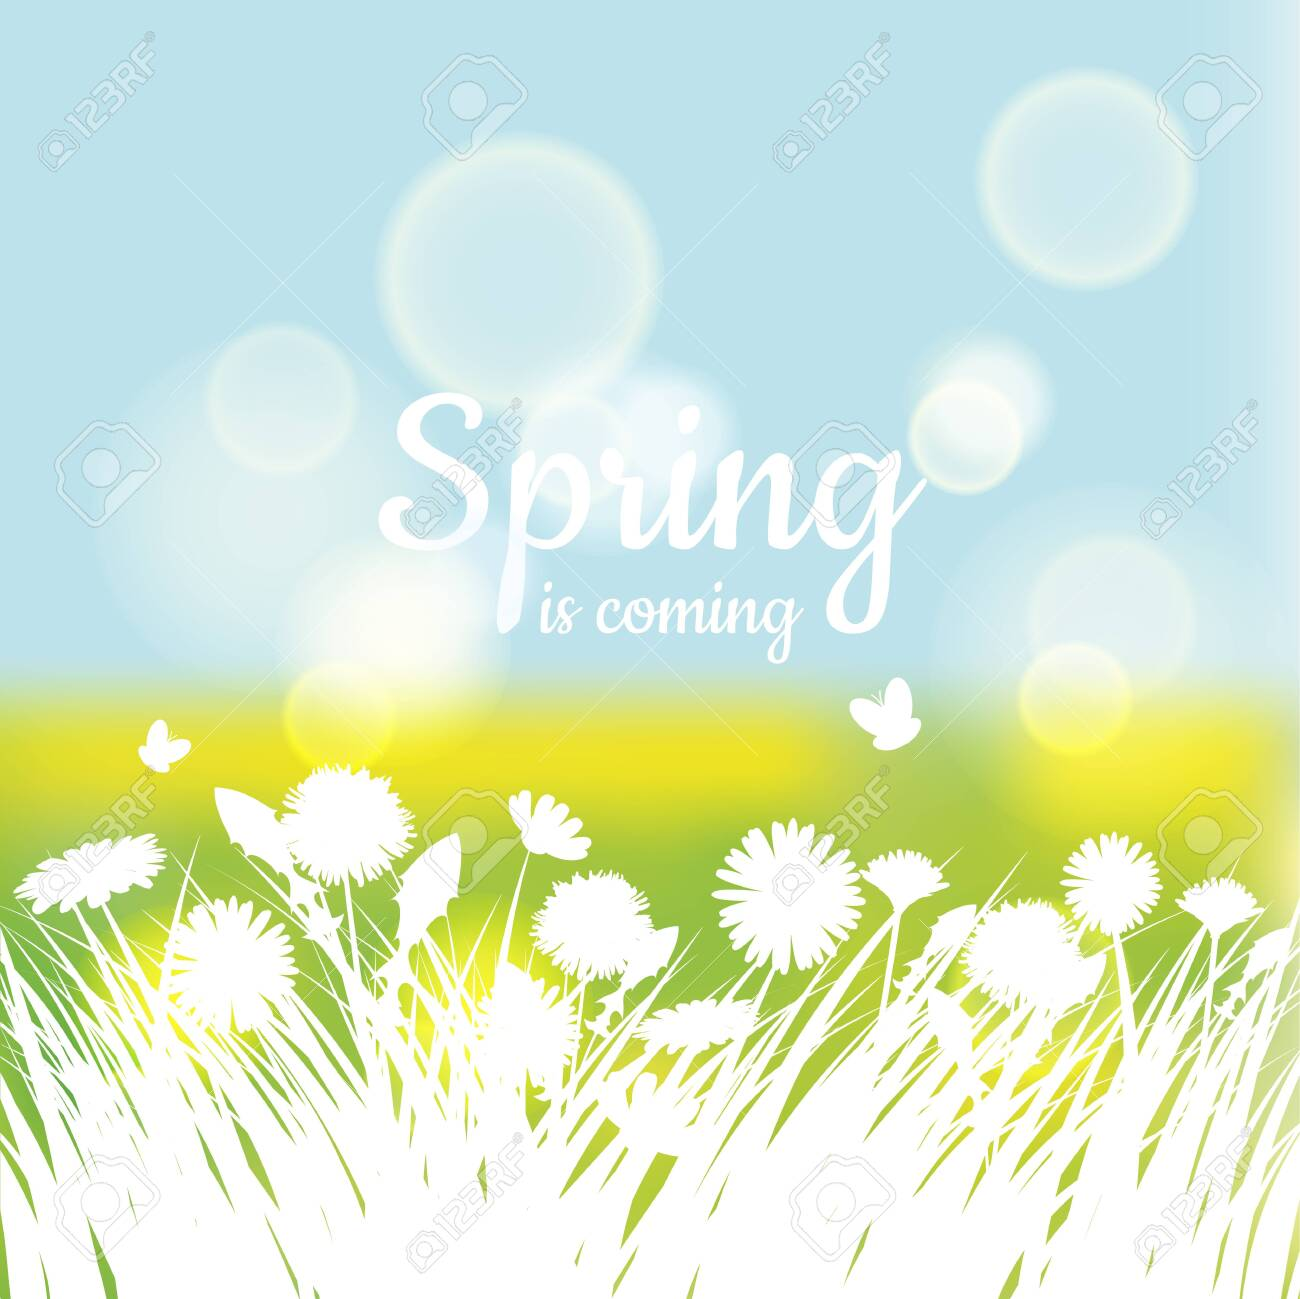 Hello Spring with green grass and chamomile on green background. Spring background. Design for banners, greeting cards, spring sales - 124805555